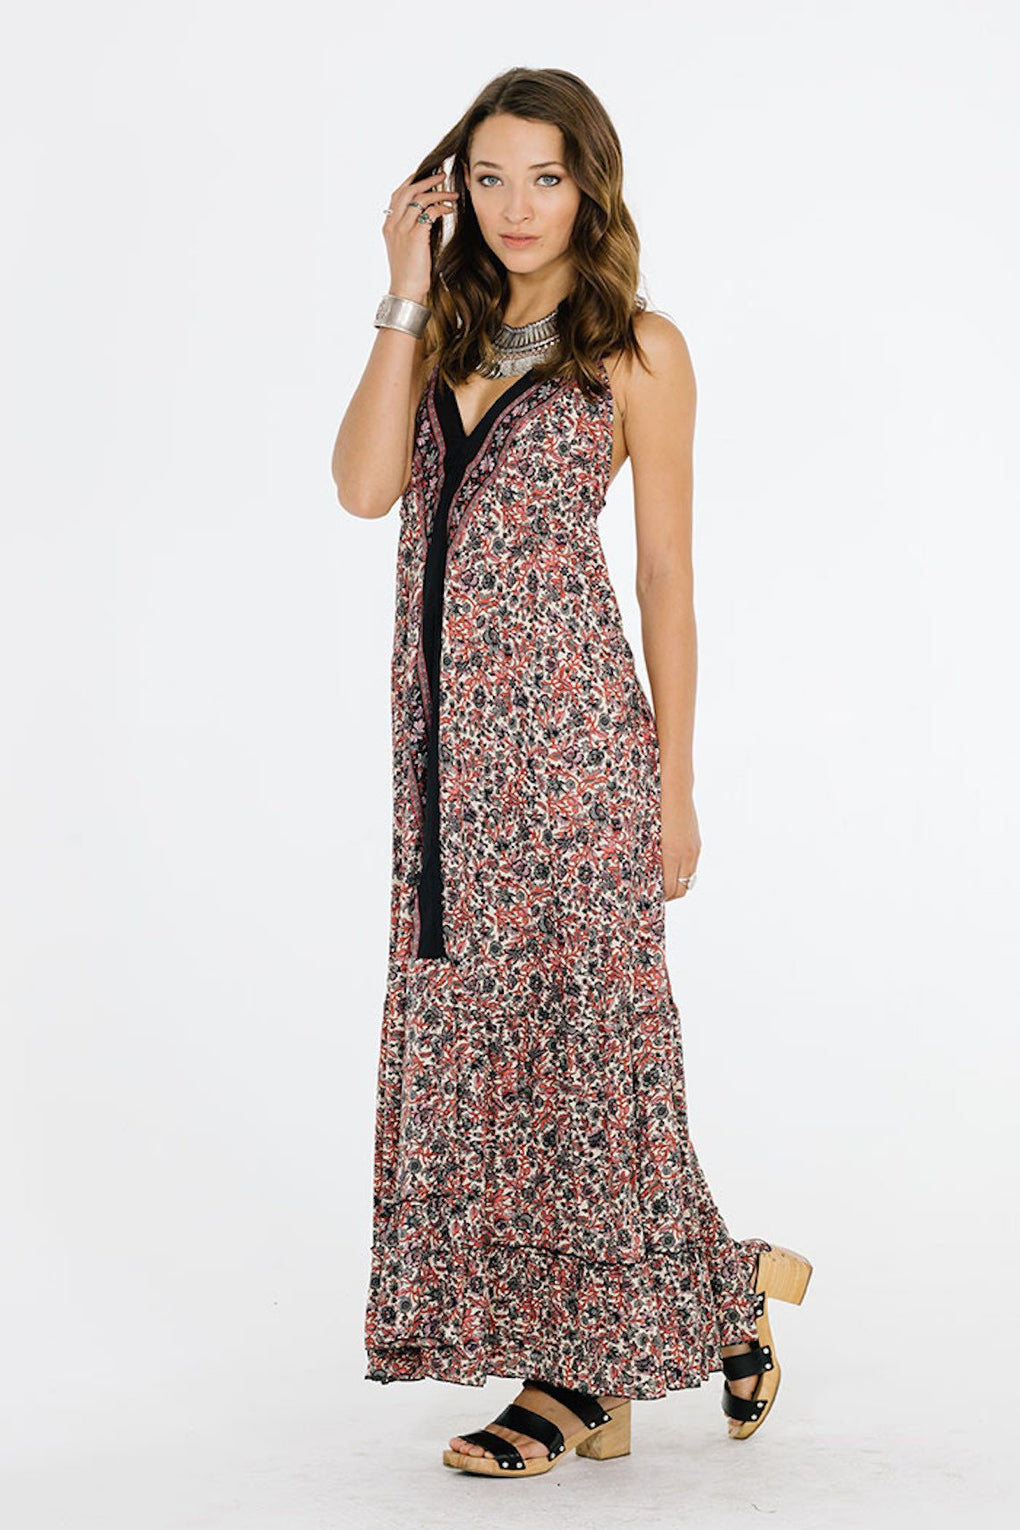 GRANADA HALTER MAXI - Danish Fashion & Living Online Store SALE